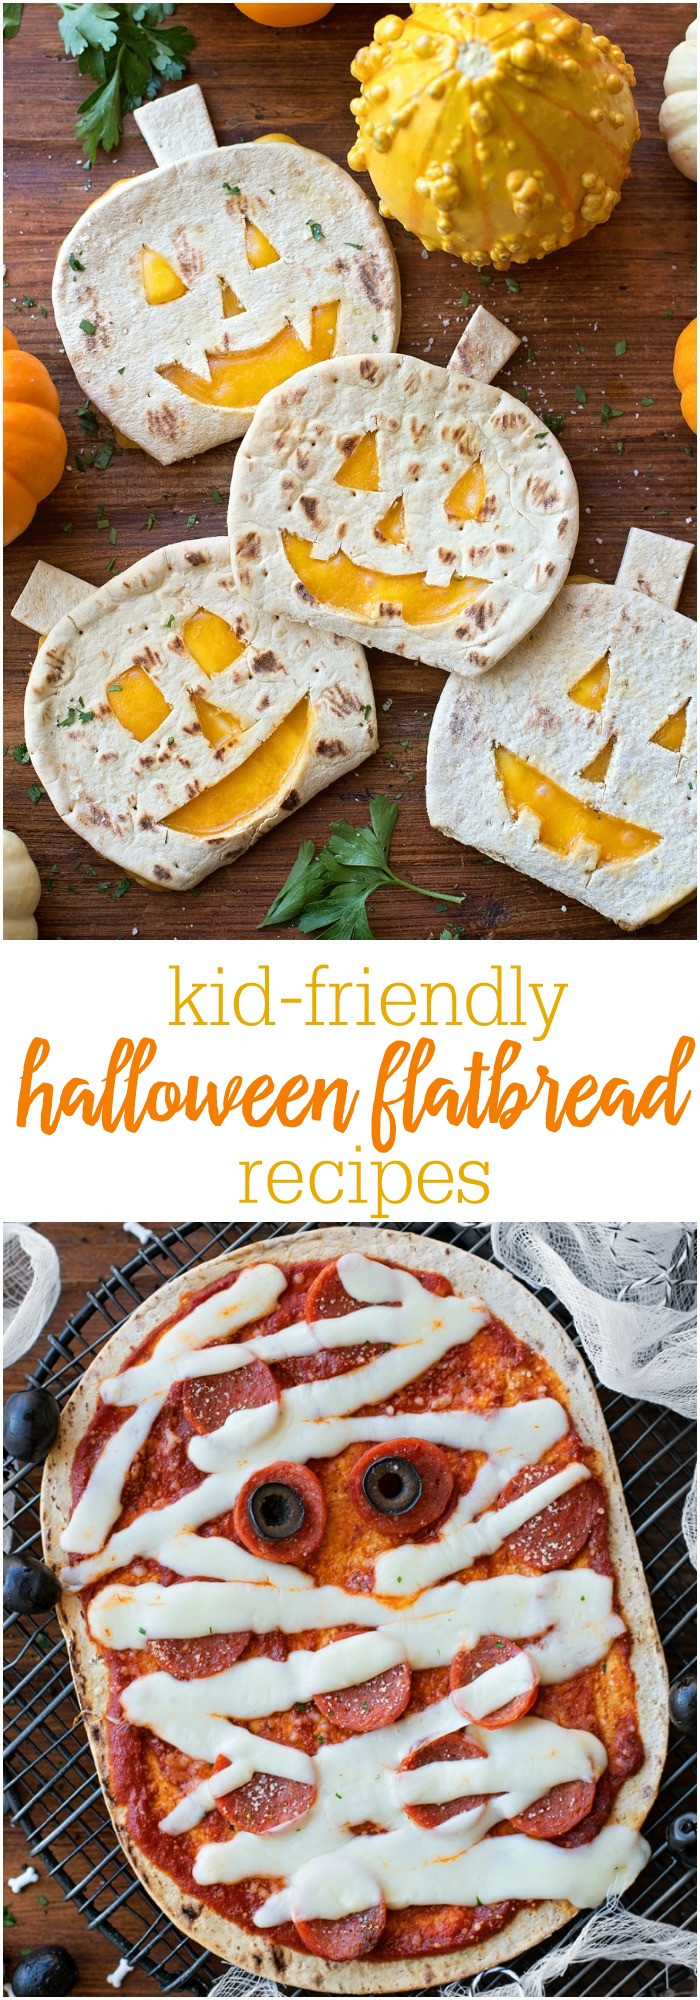 Halloween Pumpkin Recipes  Flatbread Halloween Recipes Lil Luna